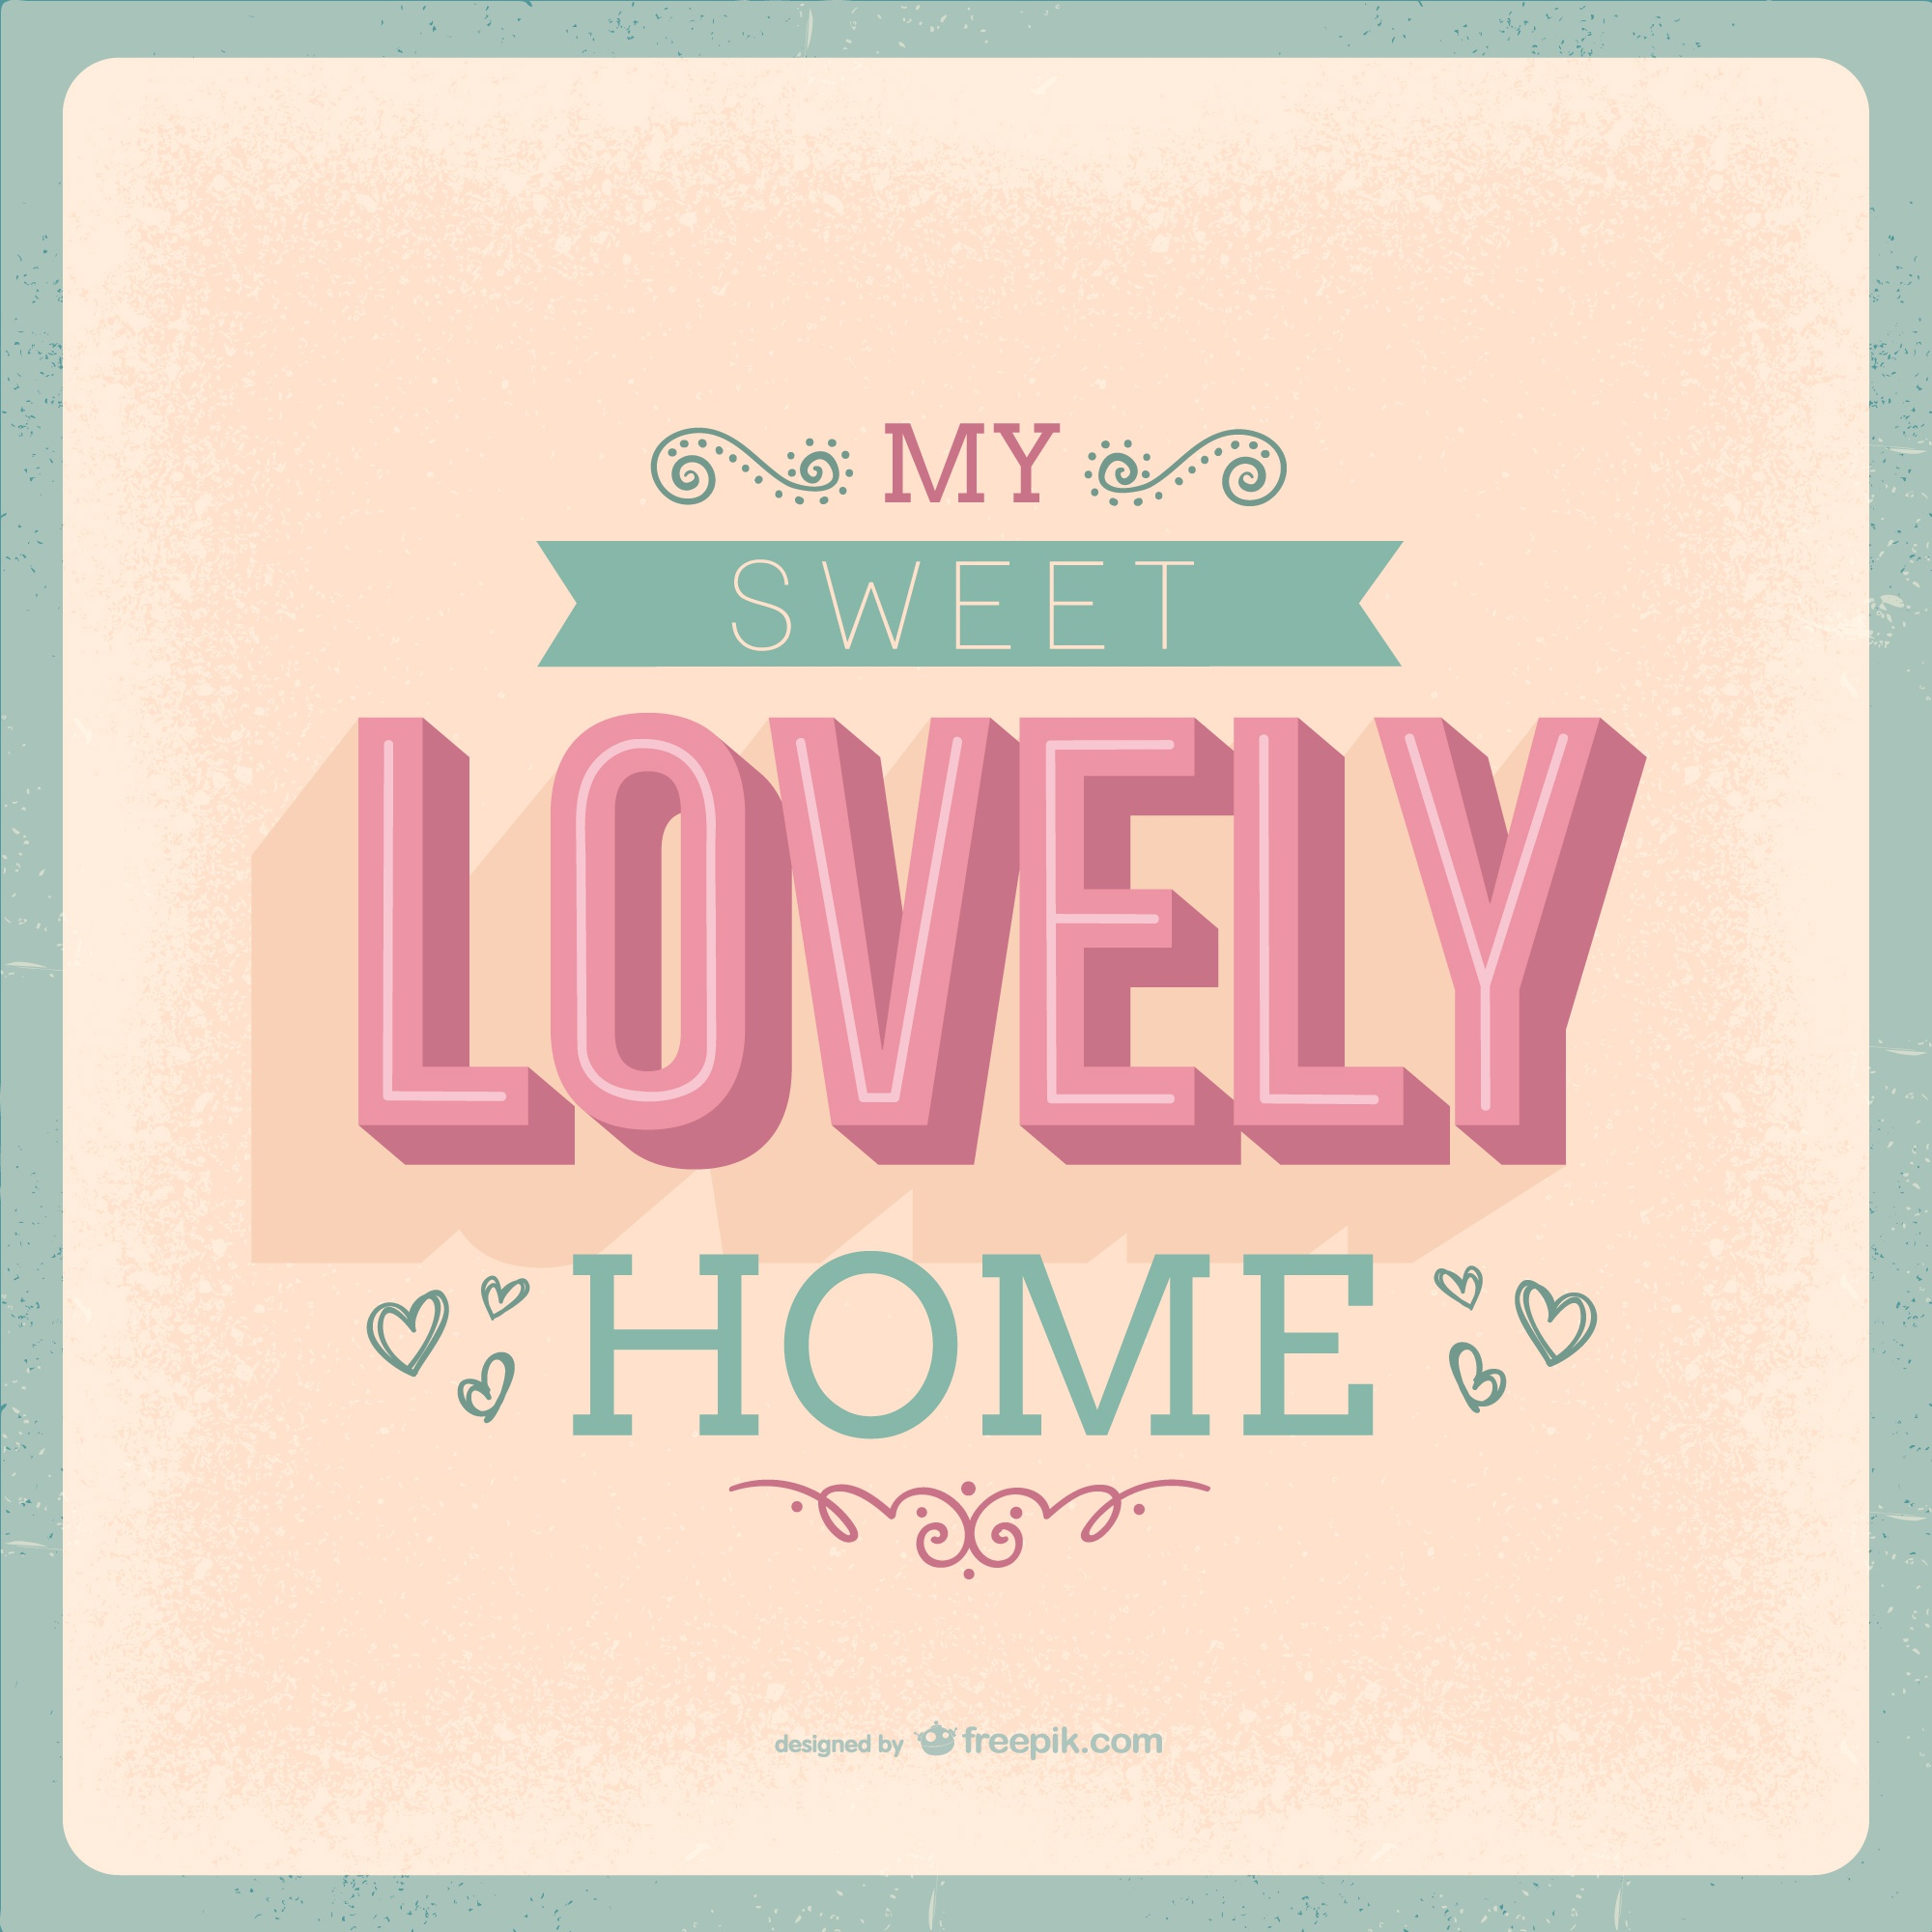 Sweet lovely home lettering